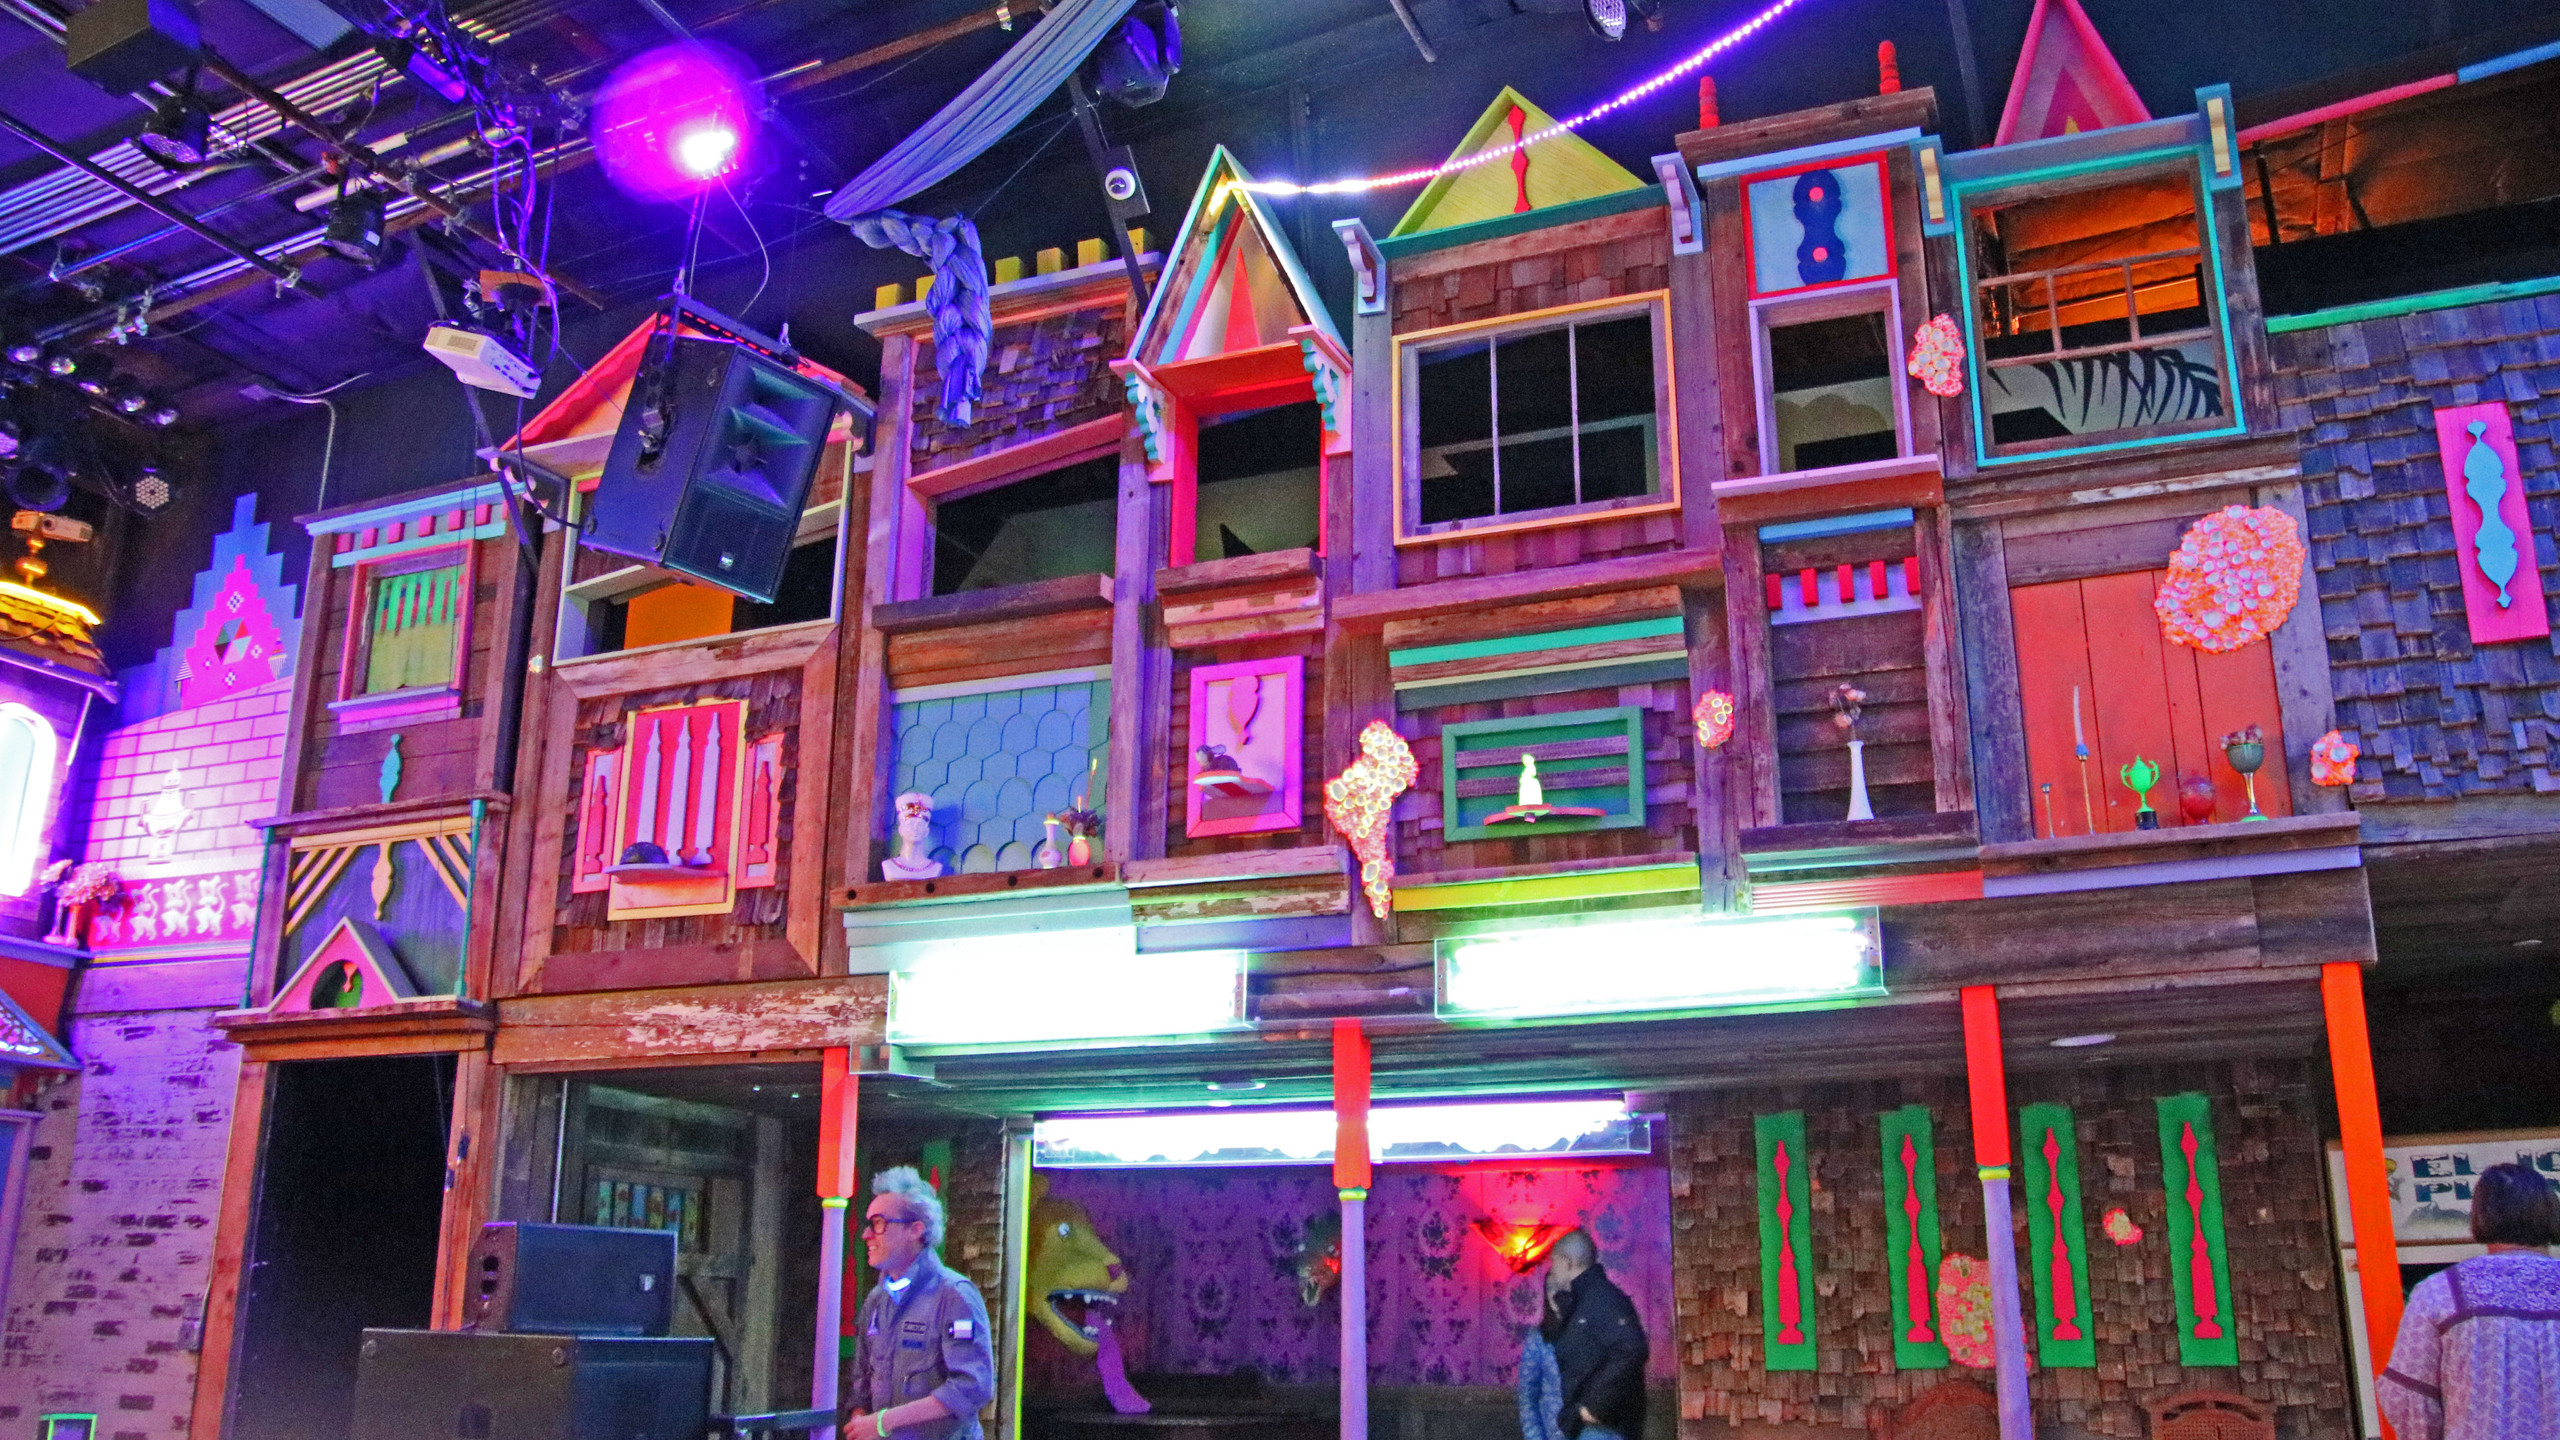 Interior of Meow Wolf in Santa Fe, New Mexico